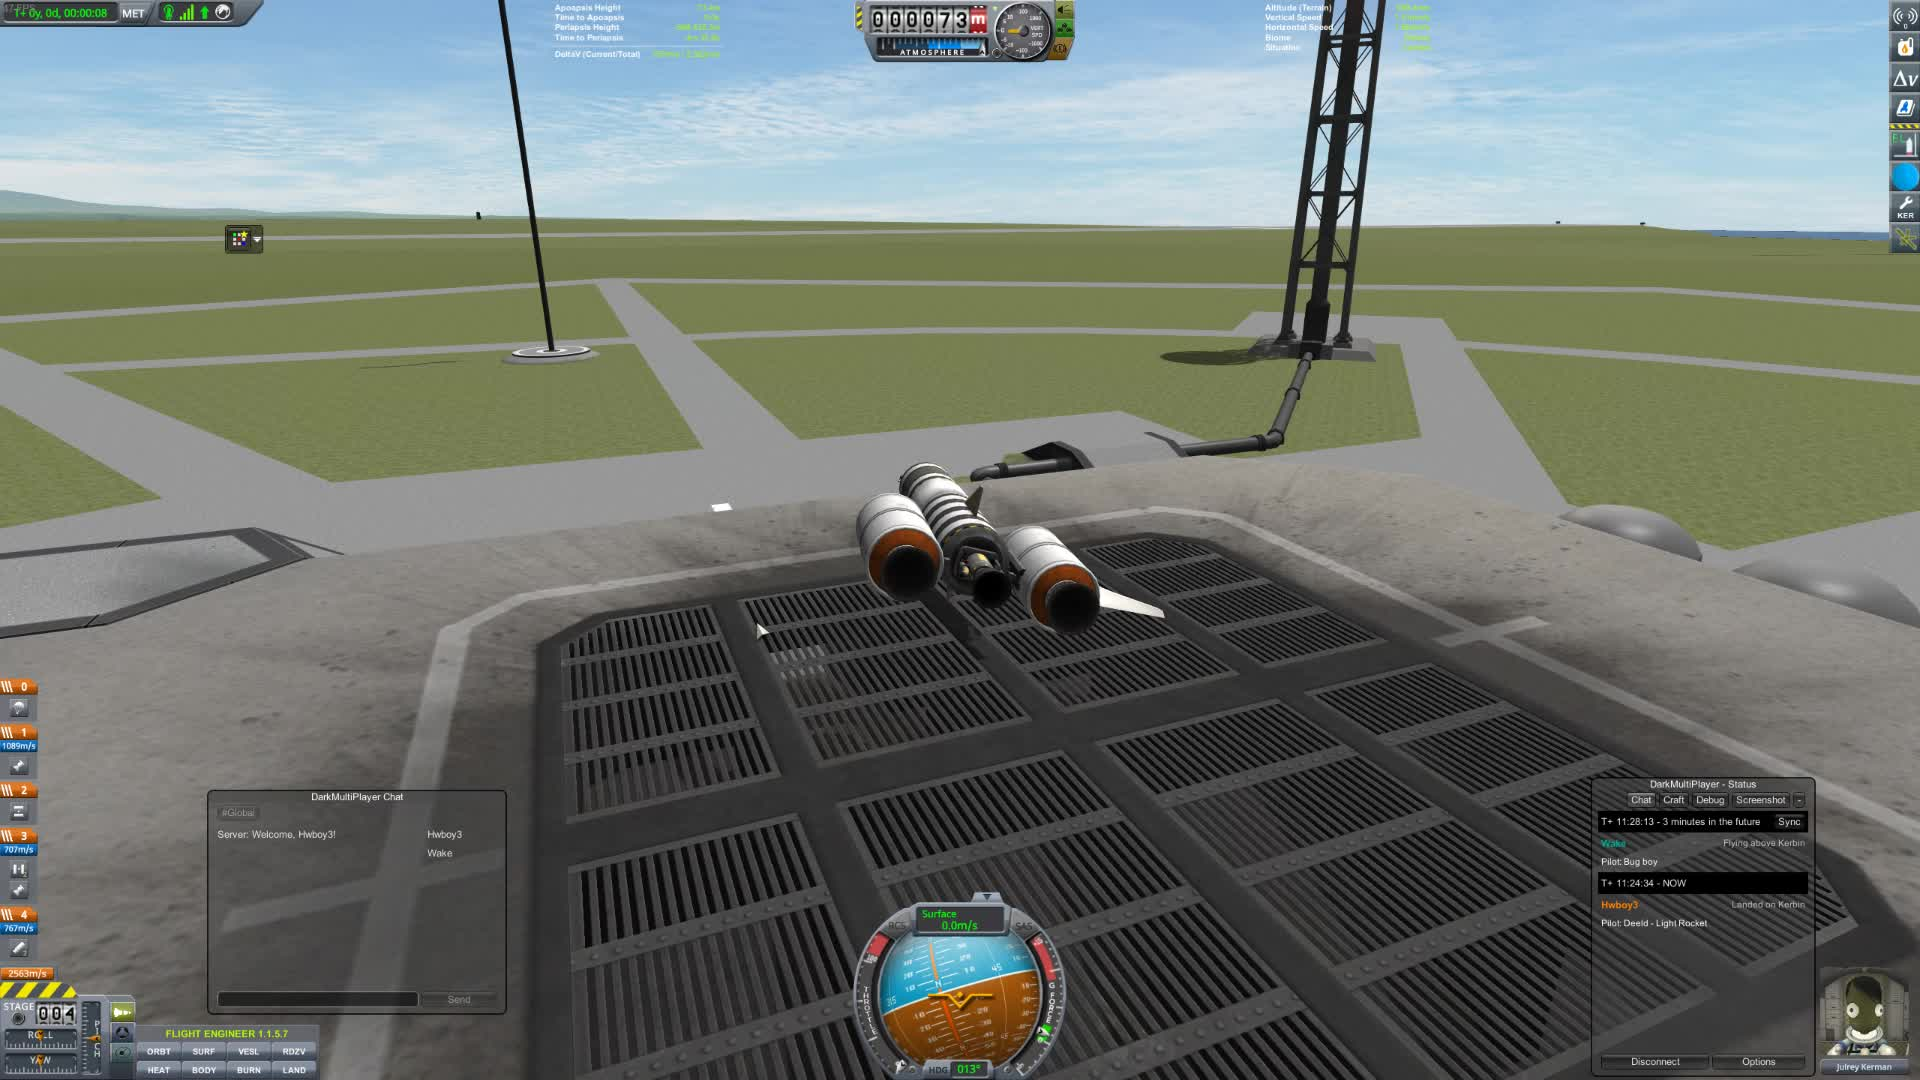 kerbalspaceprogram, Kerbal Space Program 2019.01.18 - 22.27.25.01 GIFs